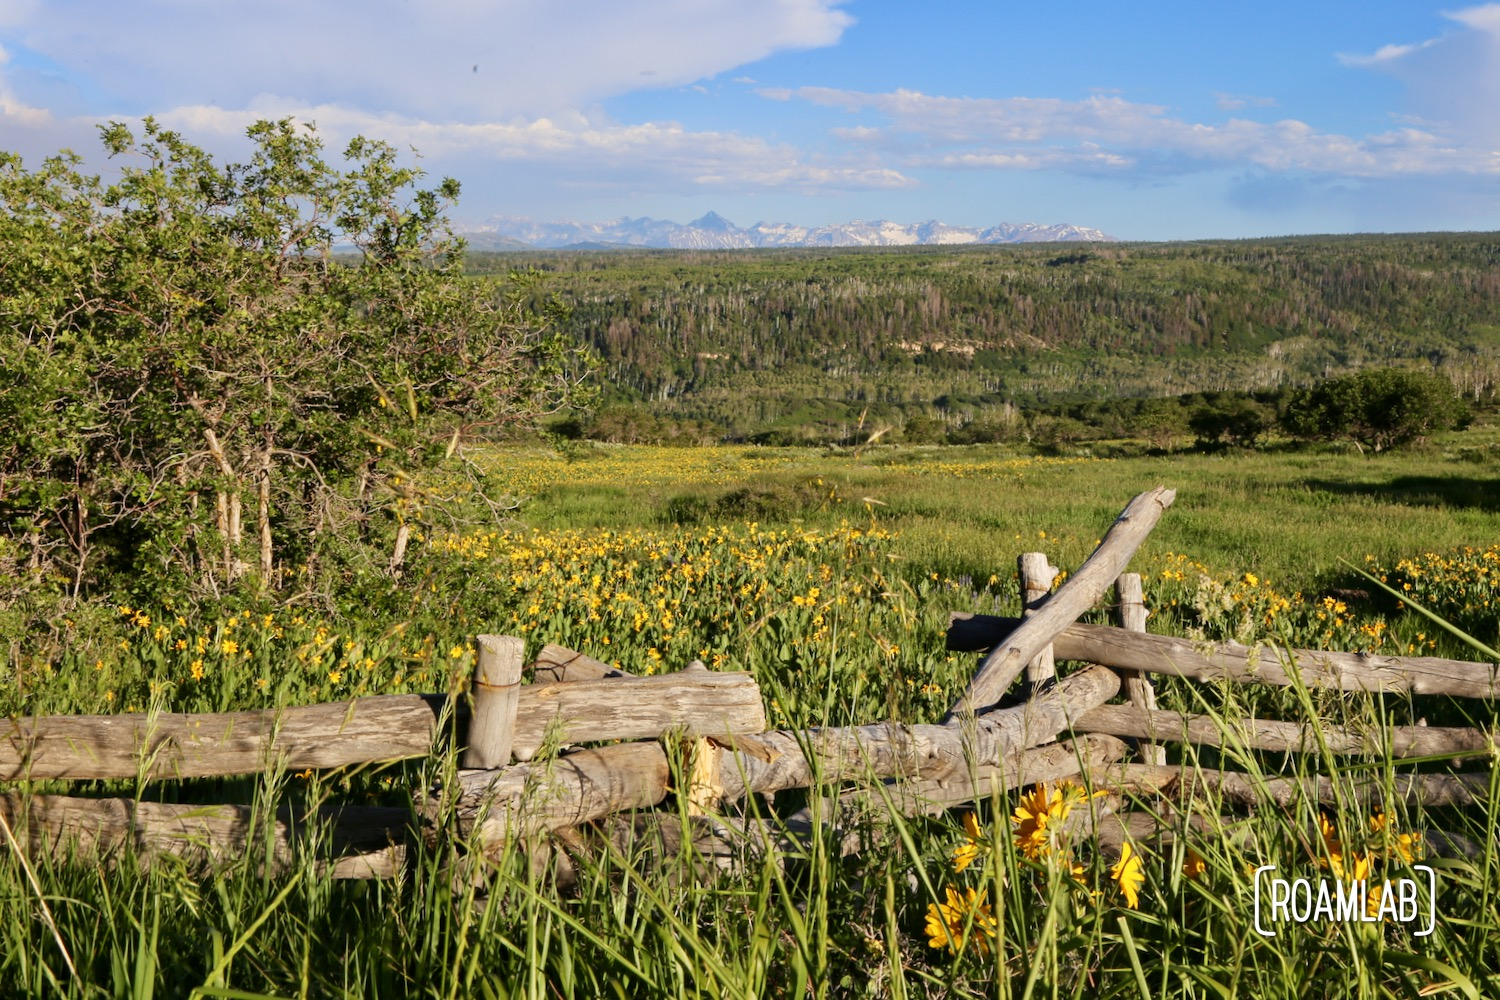 Fantastic wildflower views just outside of Montrose, Colorado